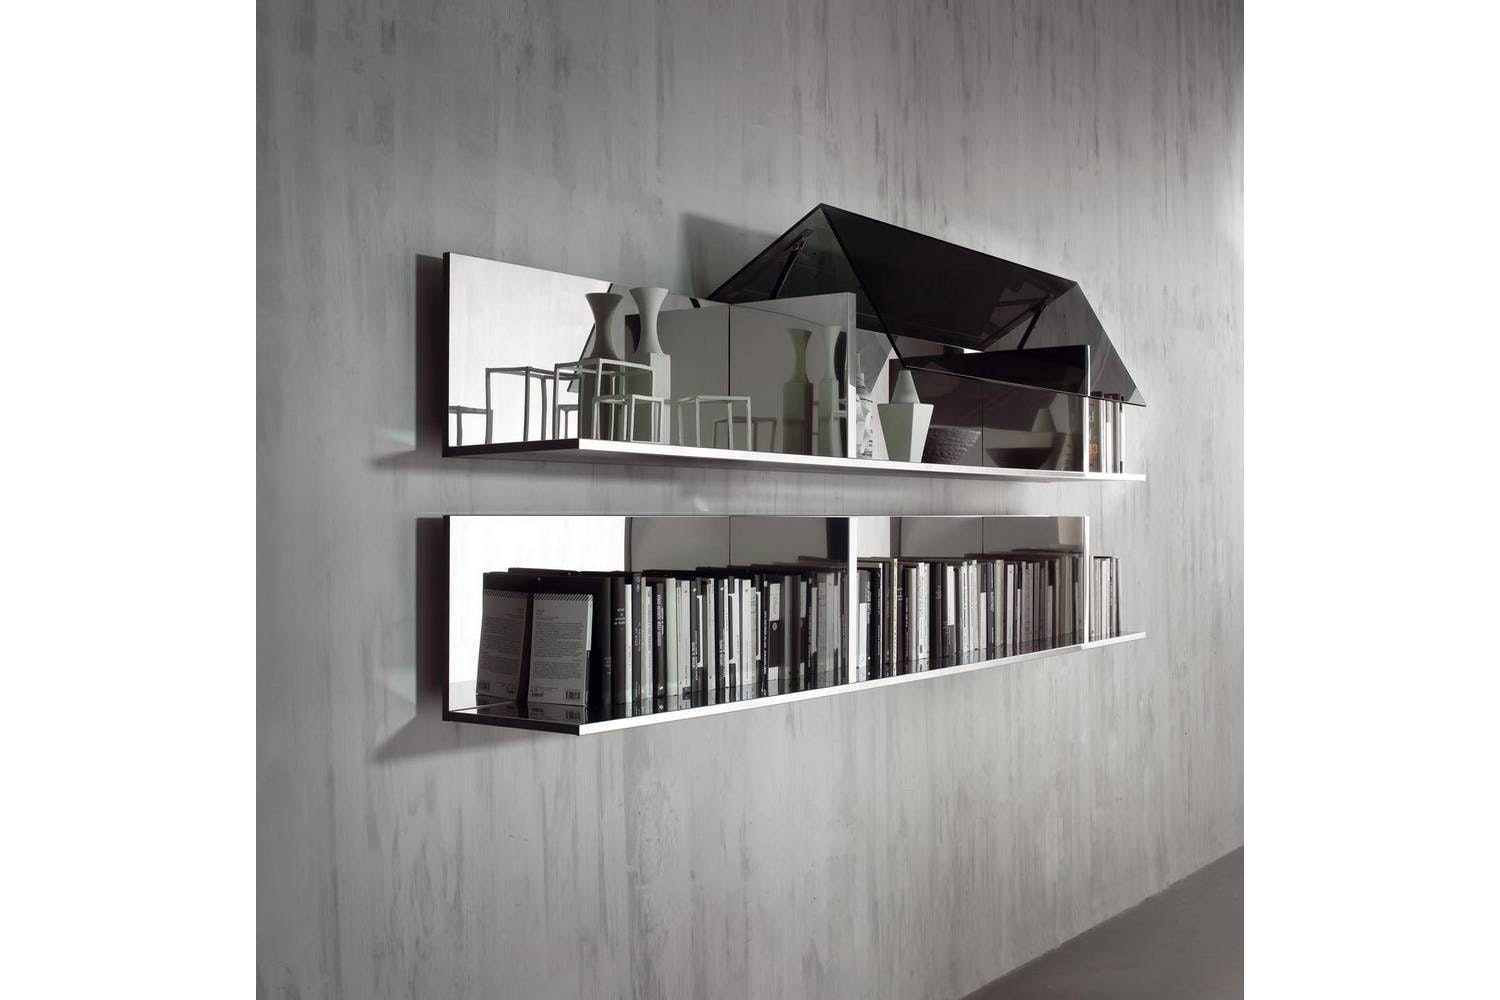 Blink Wall Mounted Storage Unit by Lodovico Acerbis for Acerbis